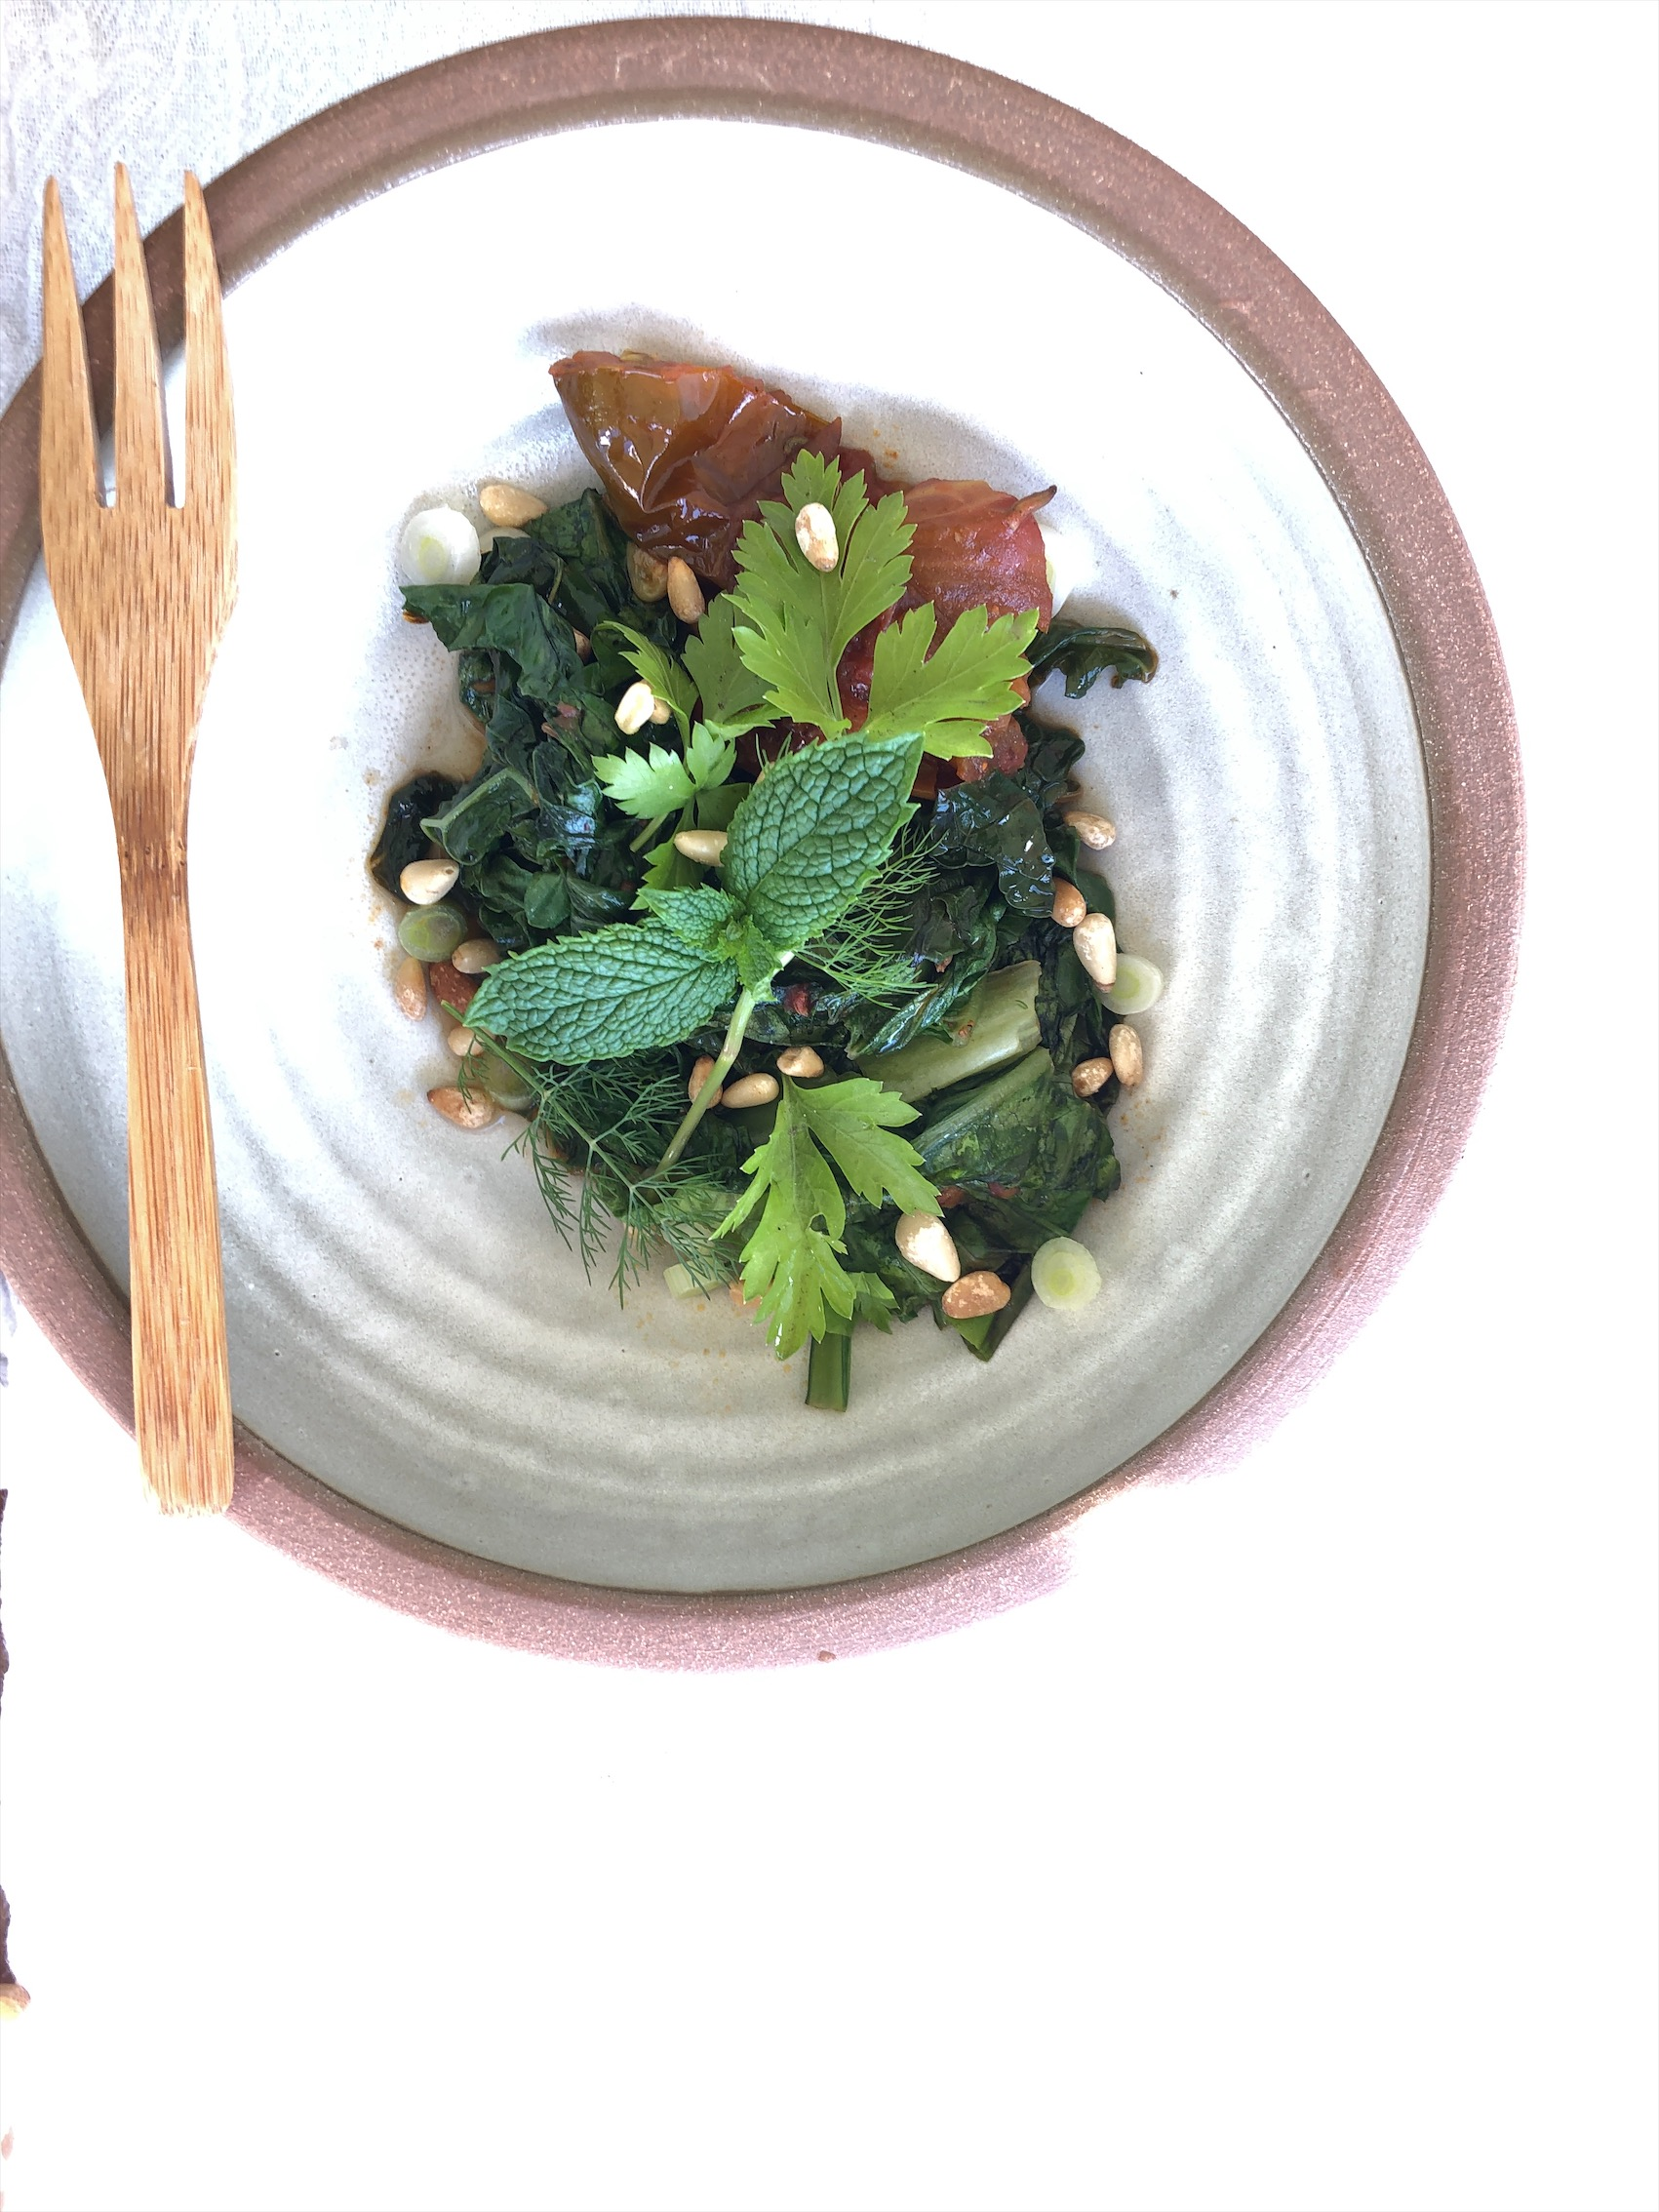 Wilted Summer Greens - About 6 Servings